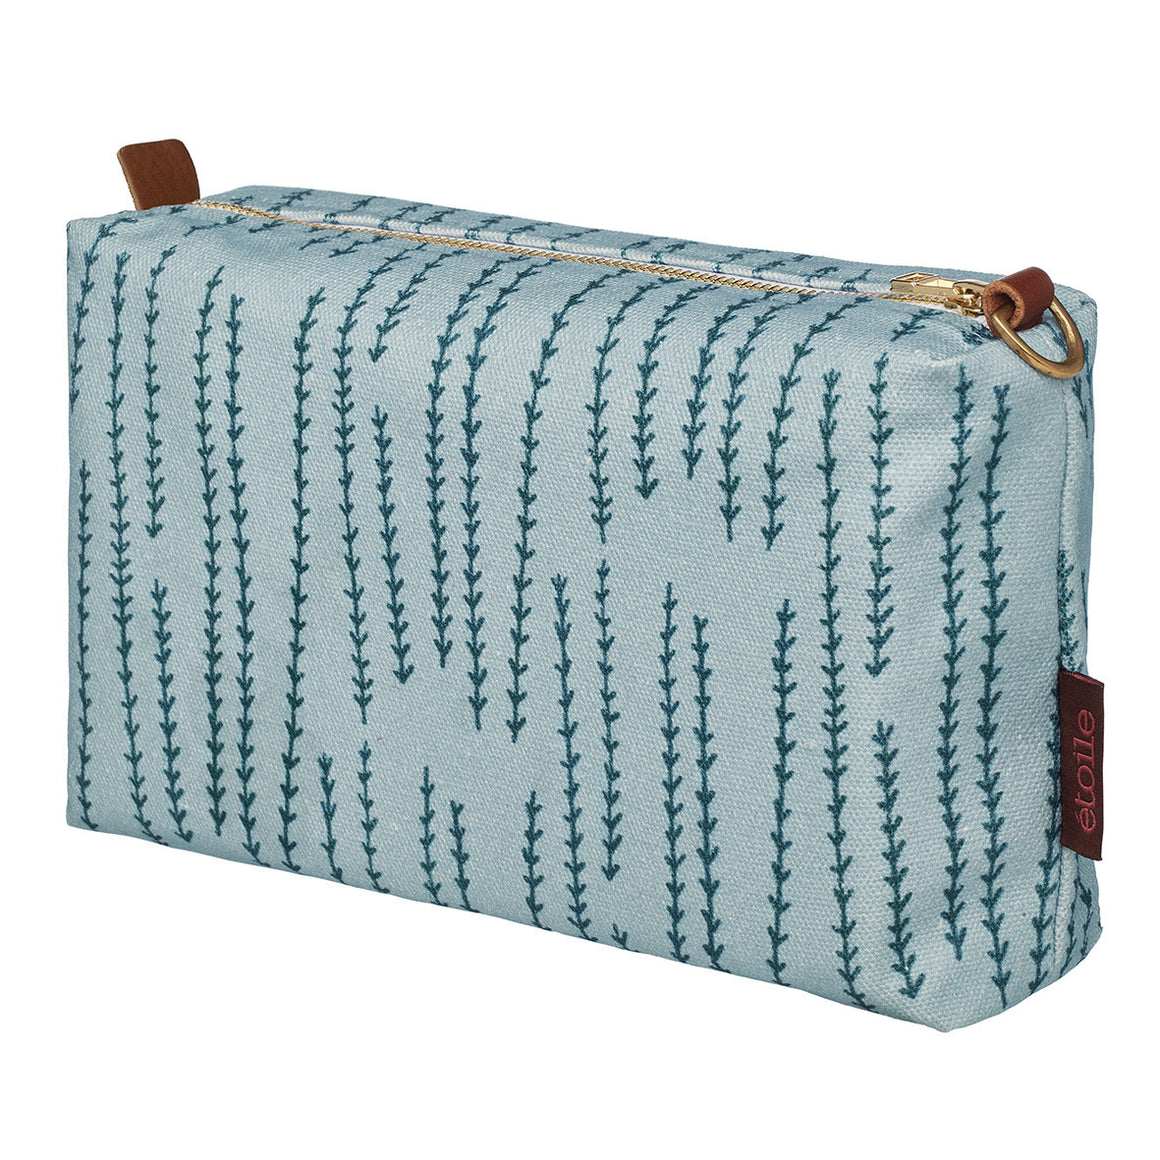 Graphic Rosemary Sprig Pattern Printed Cotton Canvas Wash Bag in Winter Blue & Petrol Blue